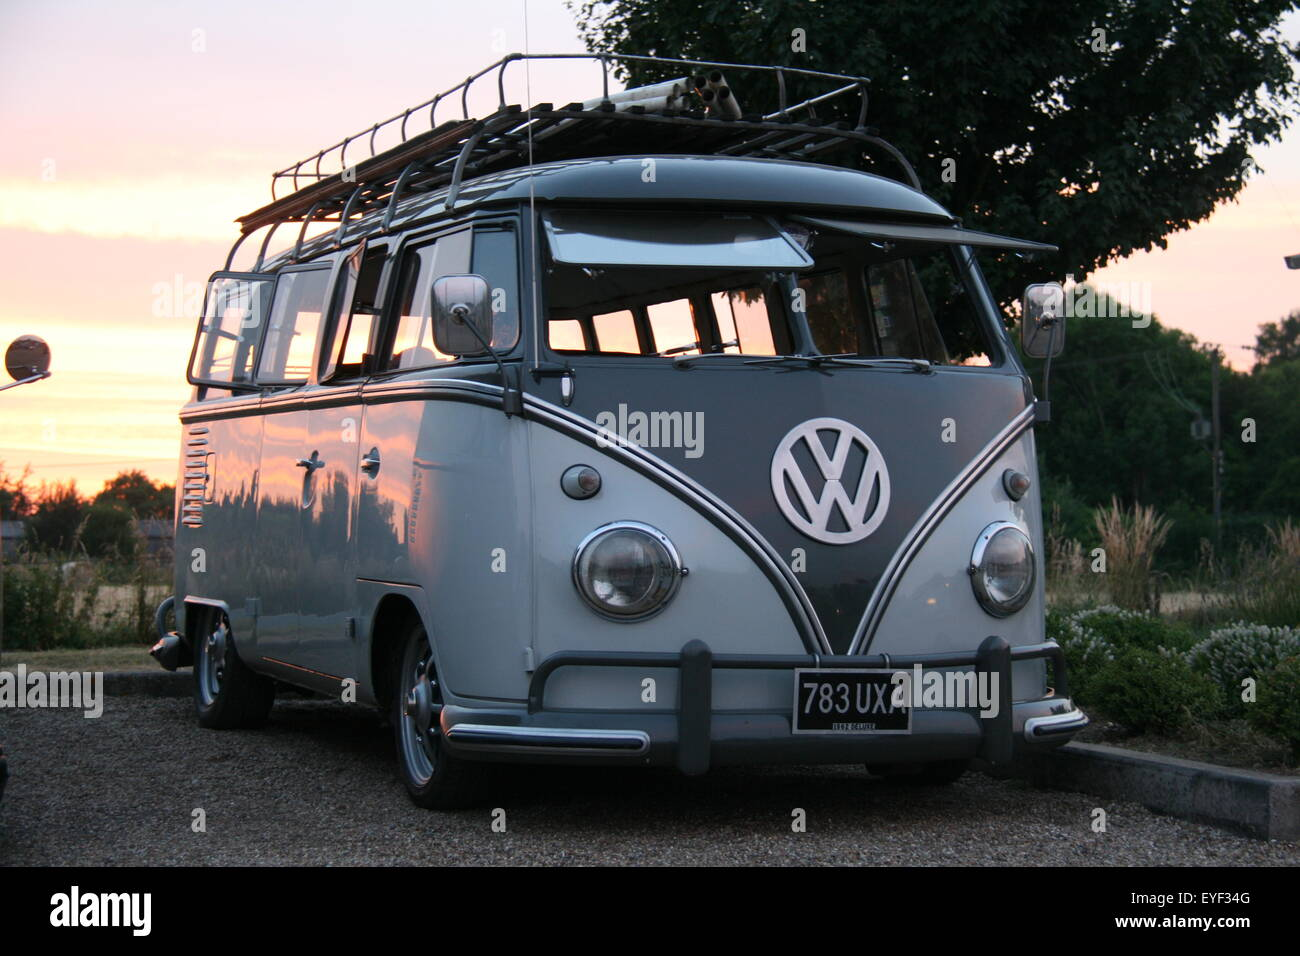 A TWO-TONE GREY RETRO MODIFIED 1962 VOLKSWAGEN VW CAMPER BUS TAKEN AT DUSK WITH THE SUNSET BEHIND THE VEHICLE - Stock Image